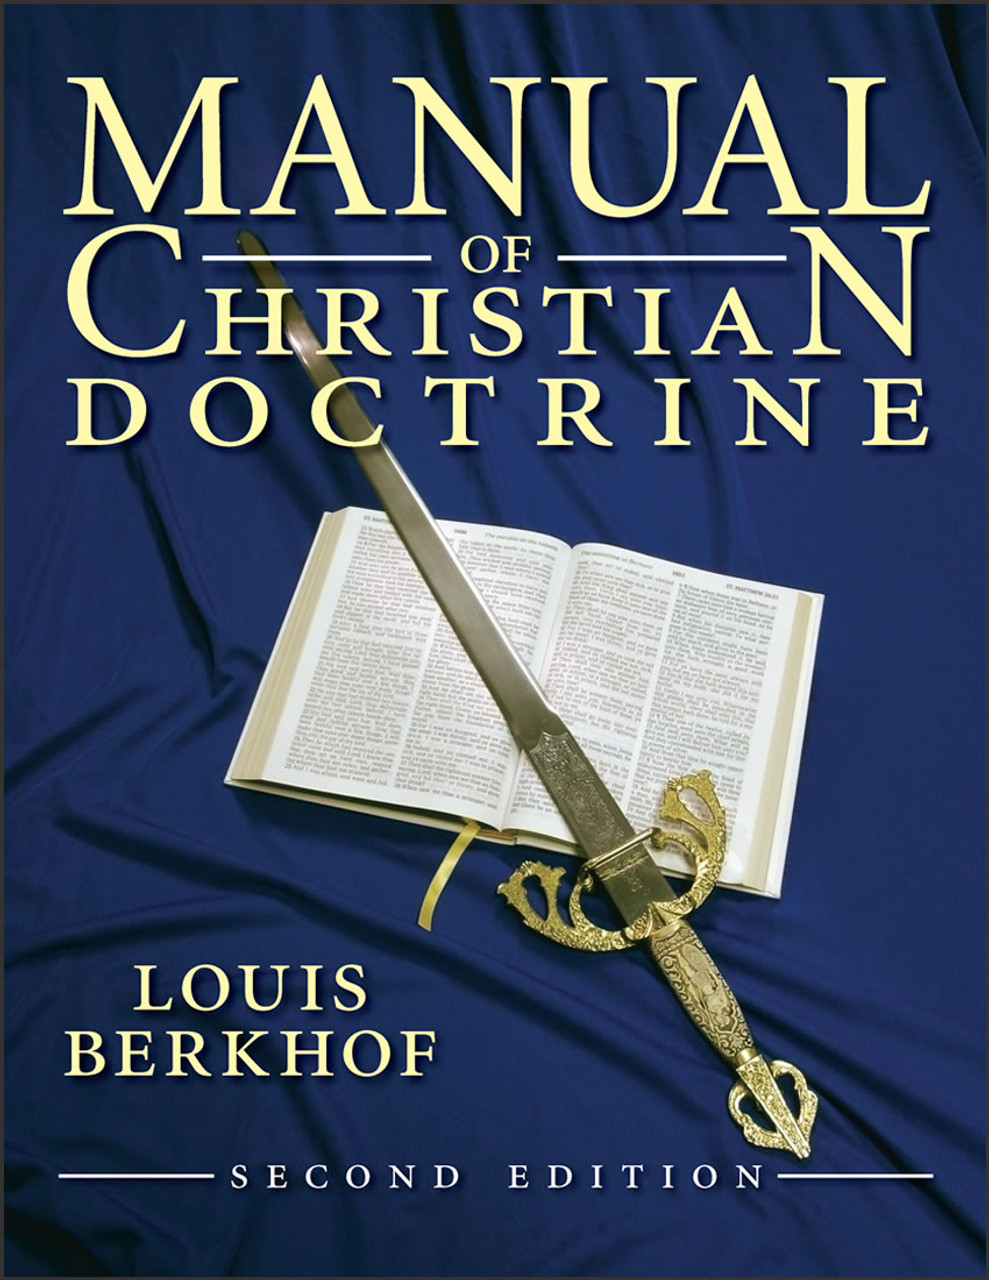 Manual of Christian Doctrine, 2nd edition